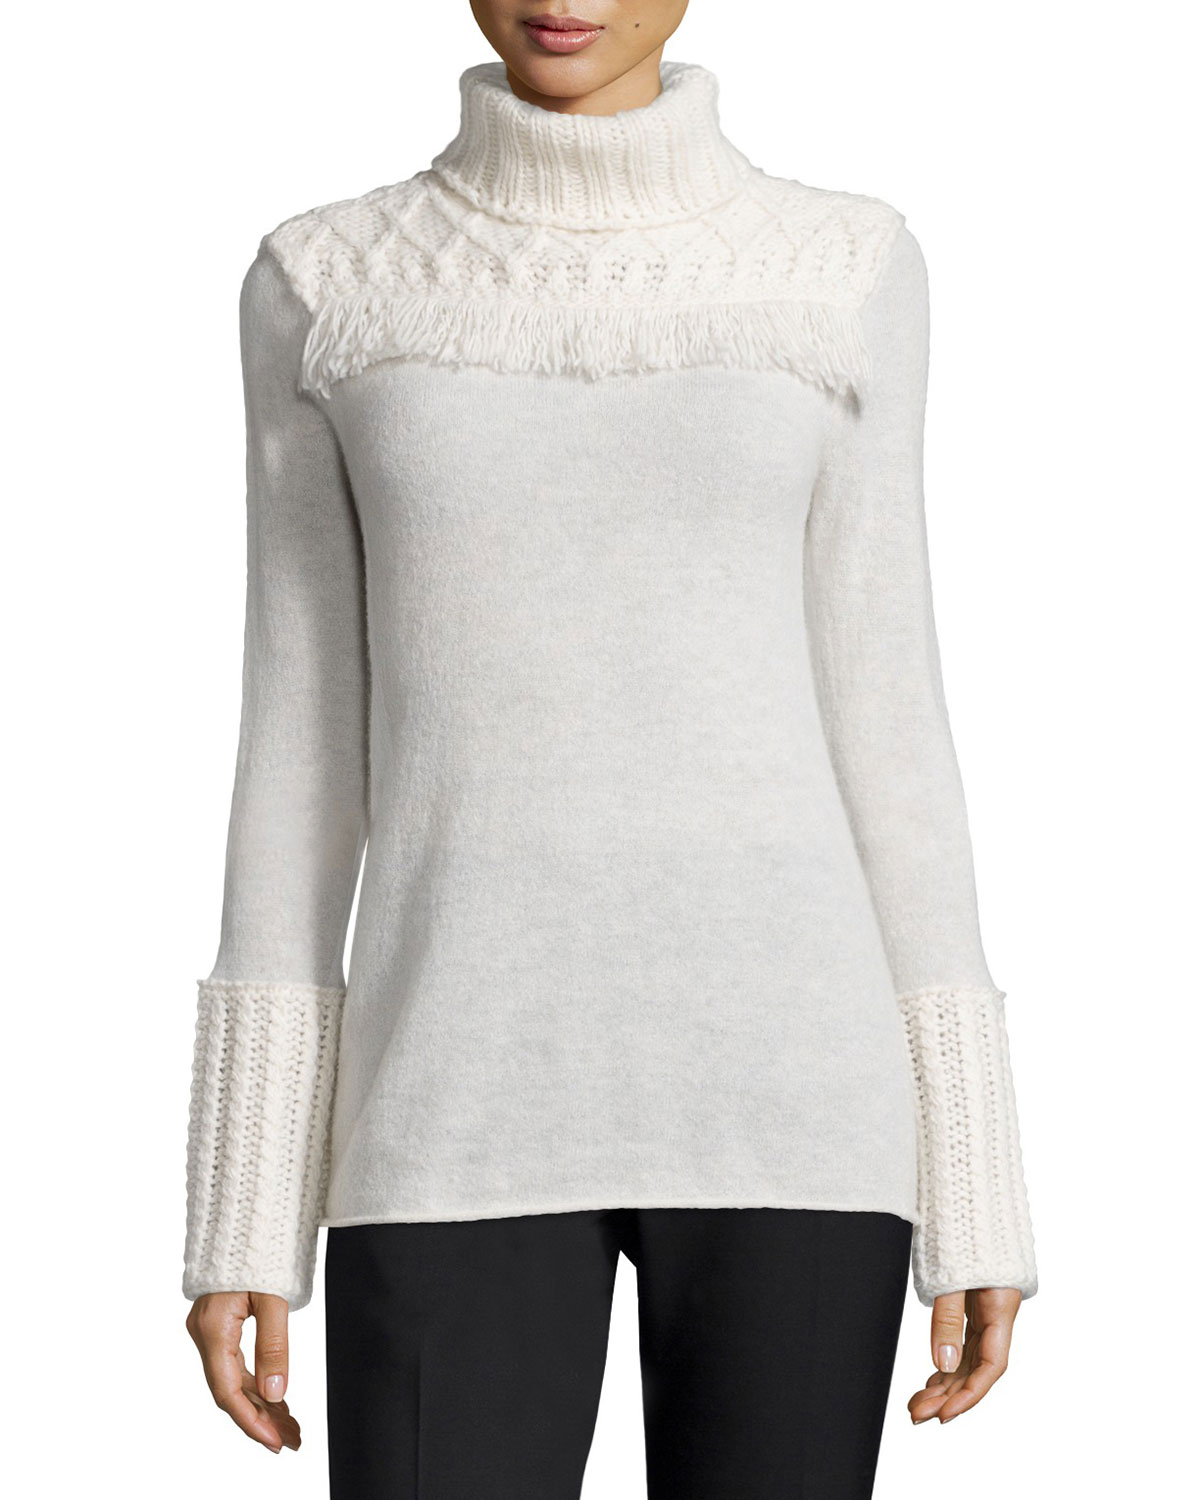 Chunky Turtleneck Pullover Sweater